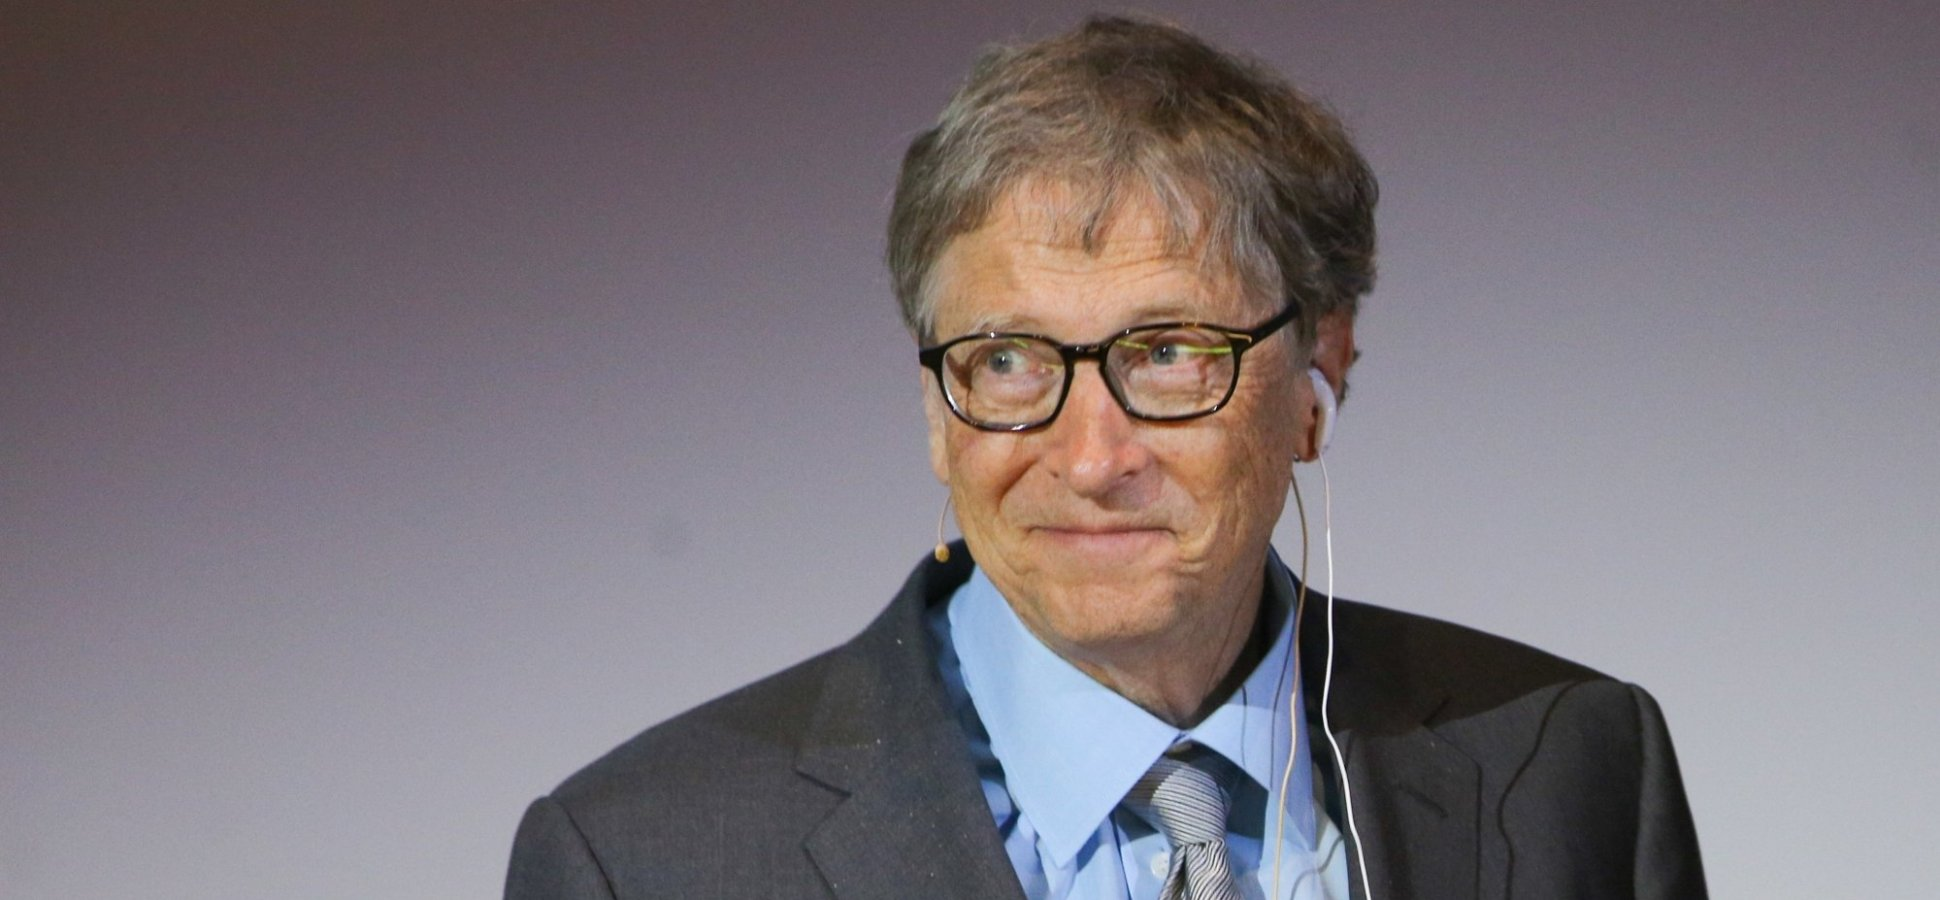 Bill Gates and MIT Have Predicted the World's Next 10 Big Innovations. Here's What They All Have in Common